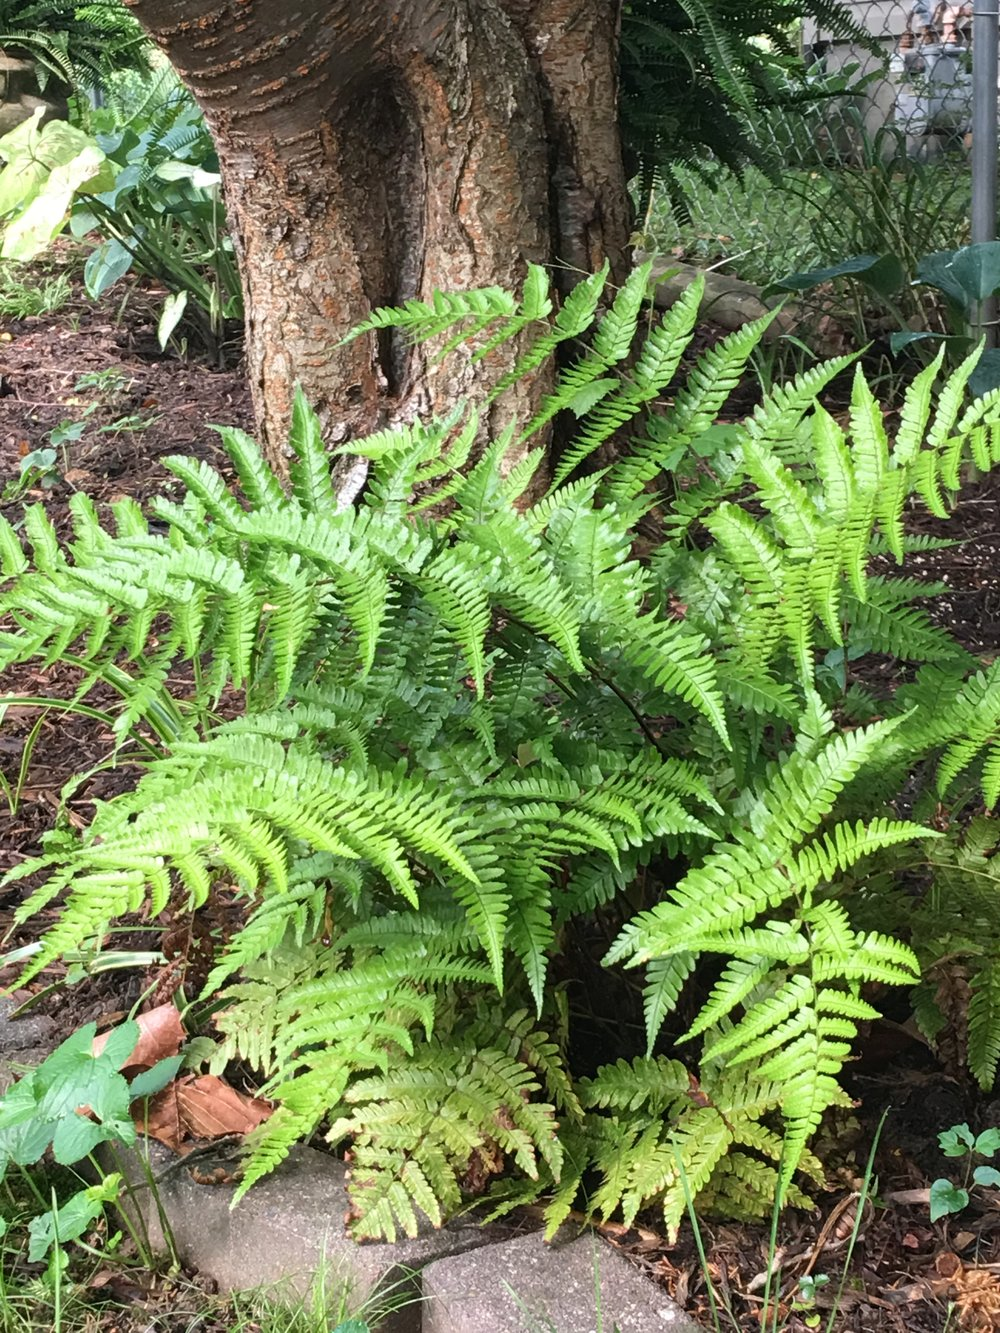 'Autumn' fern gets 2'-3' tall x 2' wide. it looks like it belongs in Jurassic Park with it's sweeping fronds and new bronze color. It is evergreen and likes dry shade.